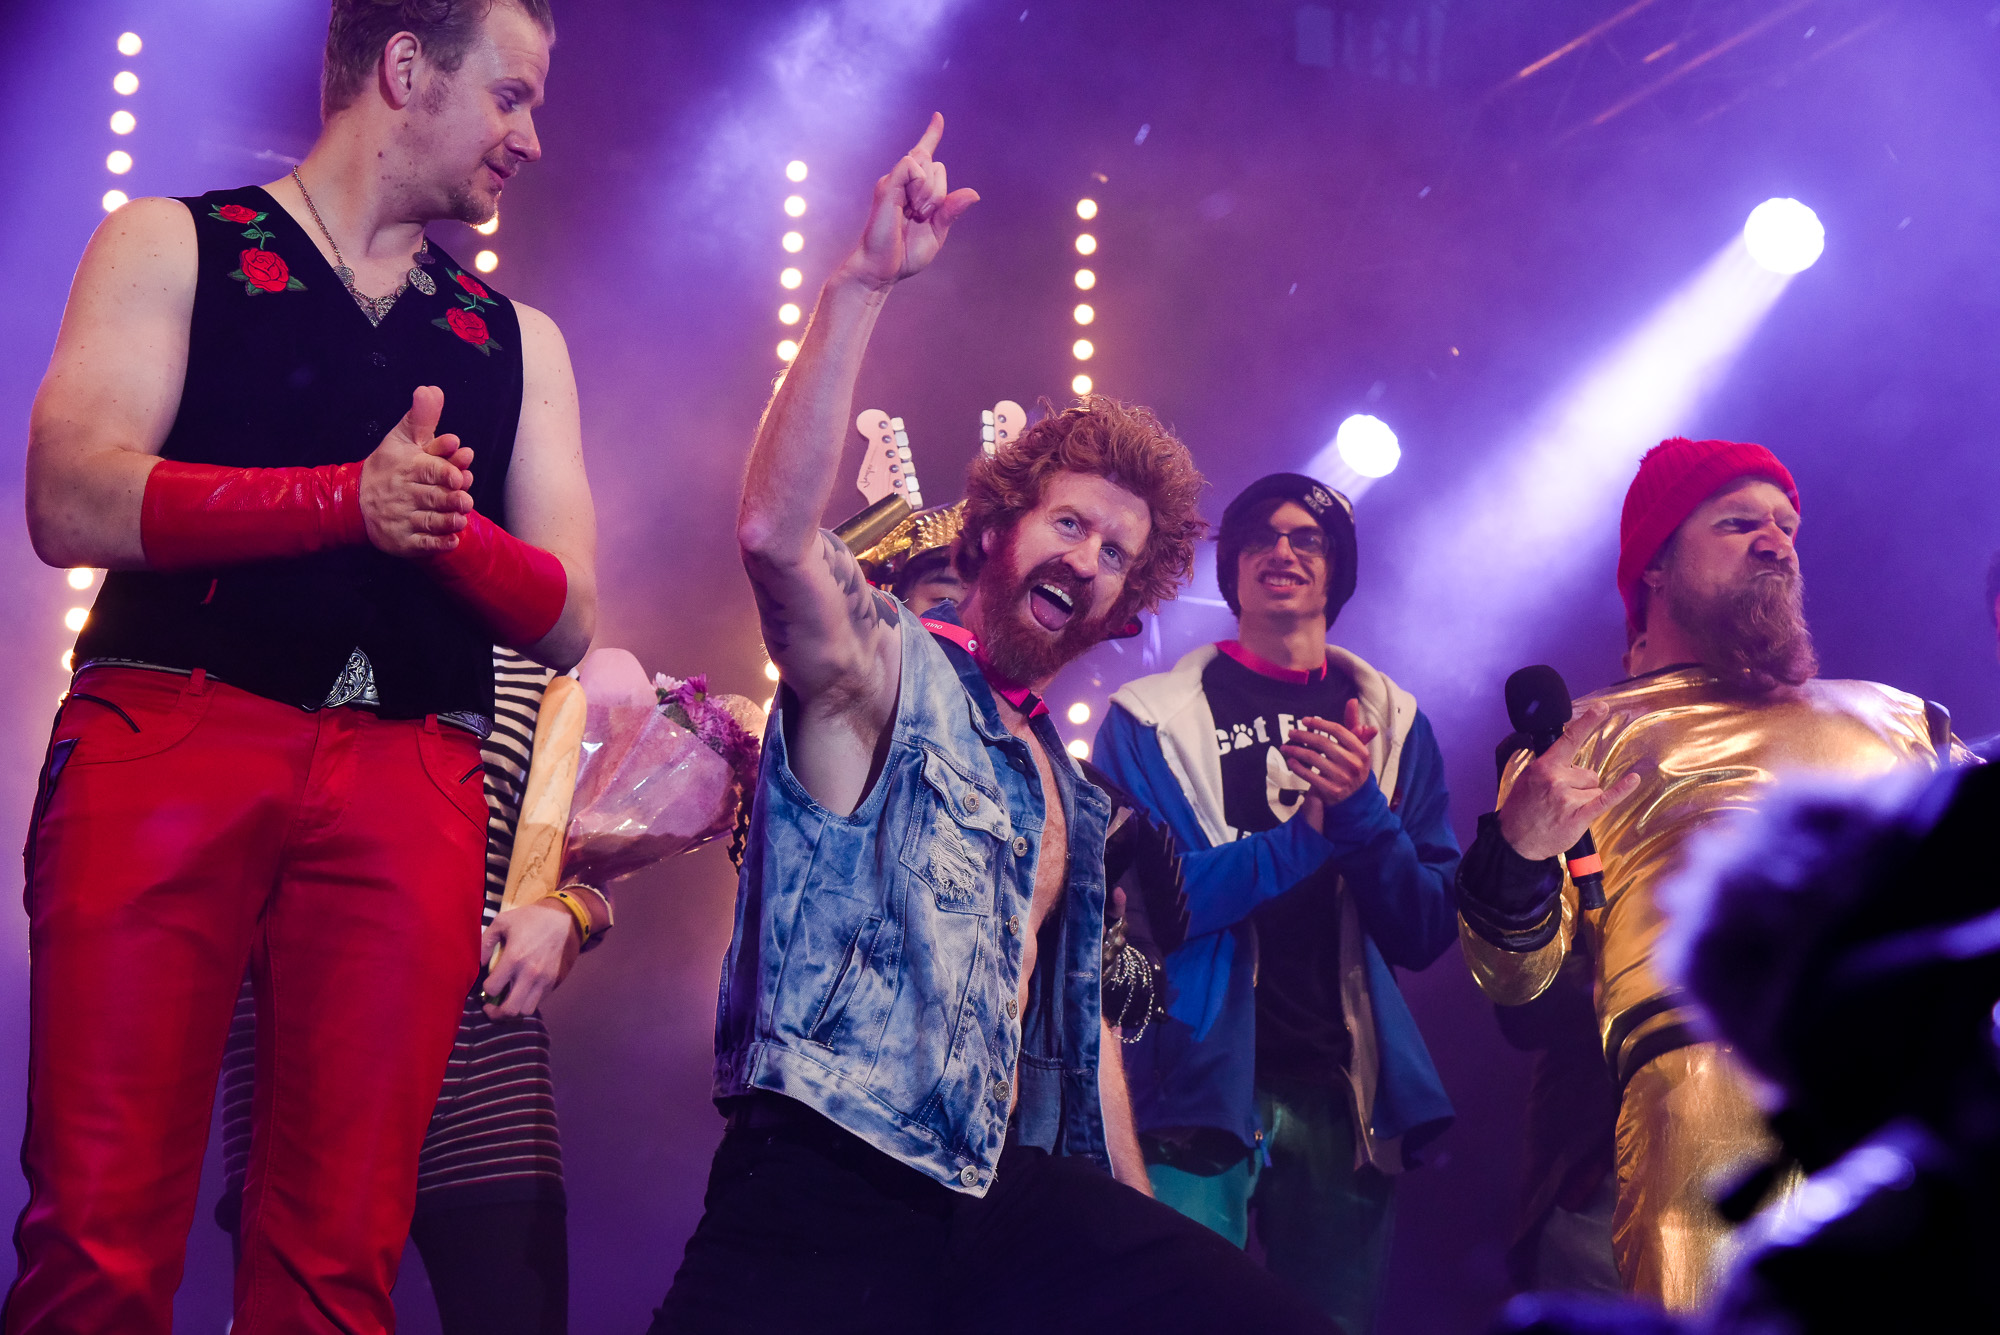 participants on stage at Air Guitar Festival